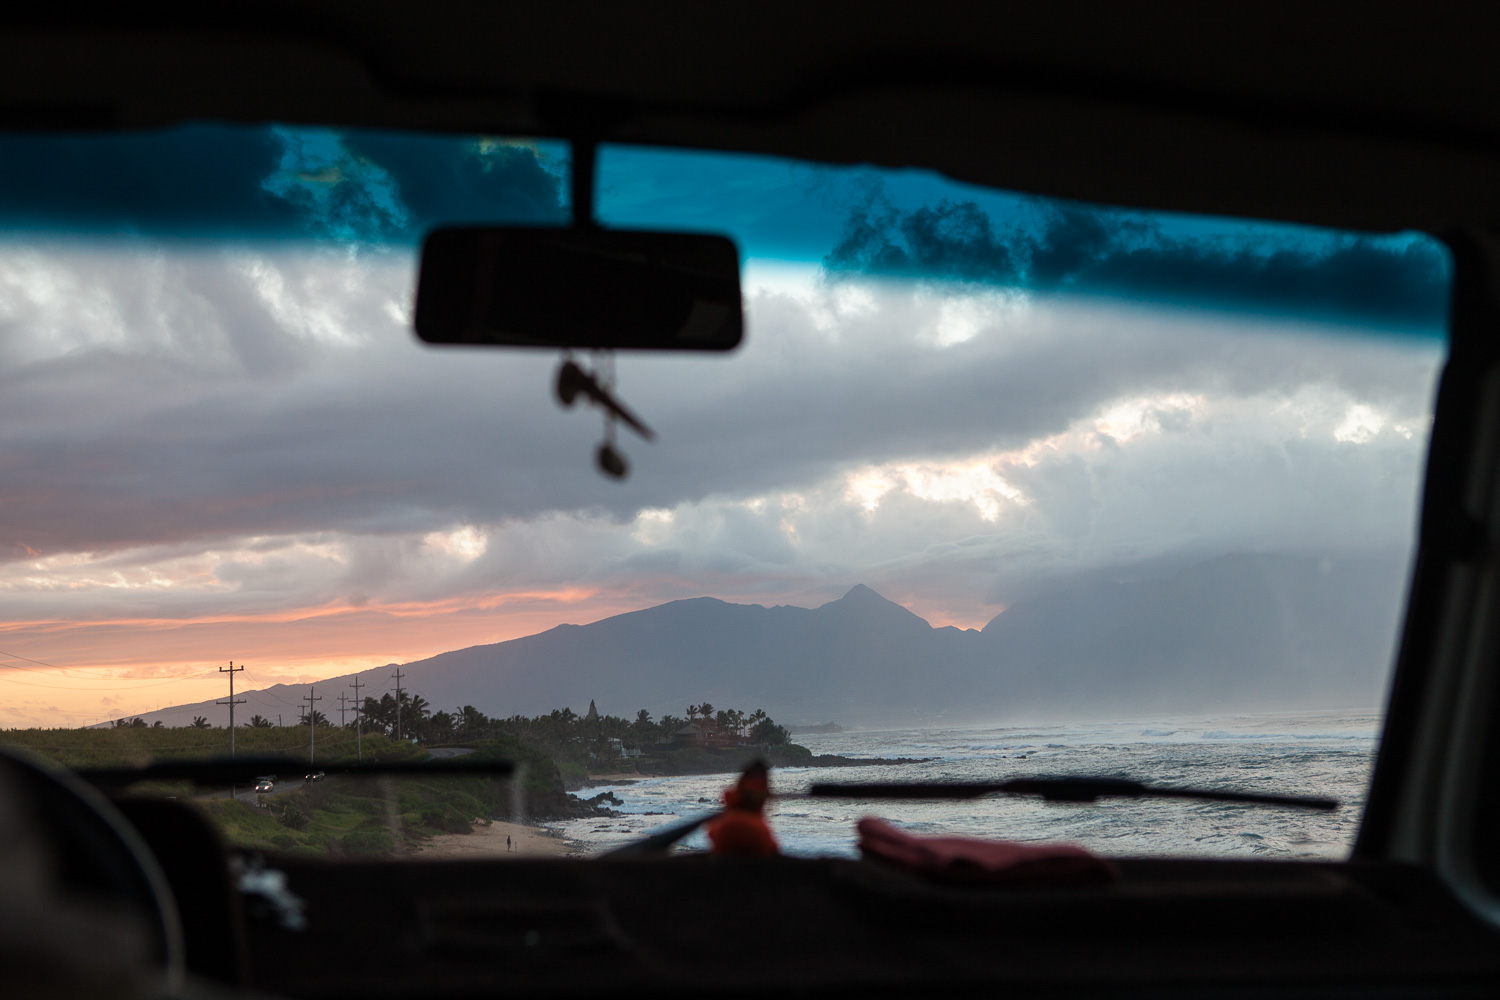 Maui's north shore as seen from my van, Donnie